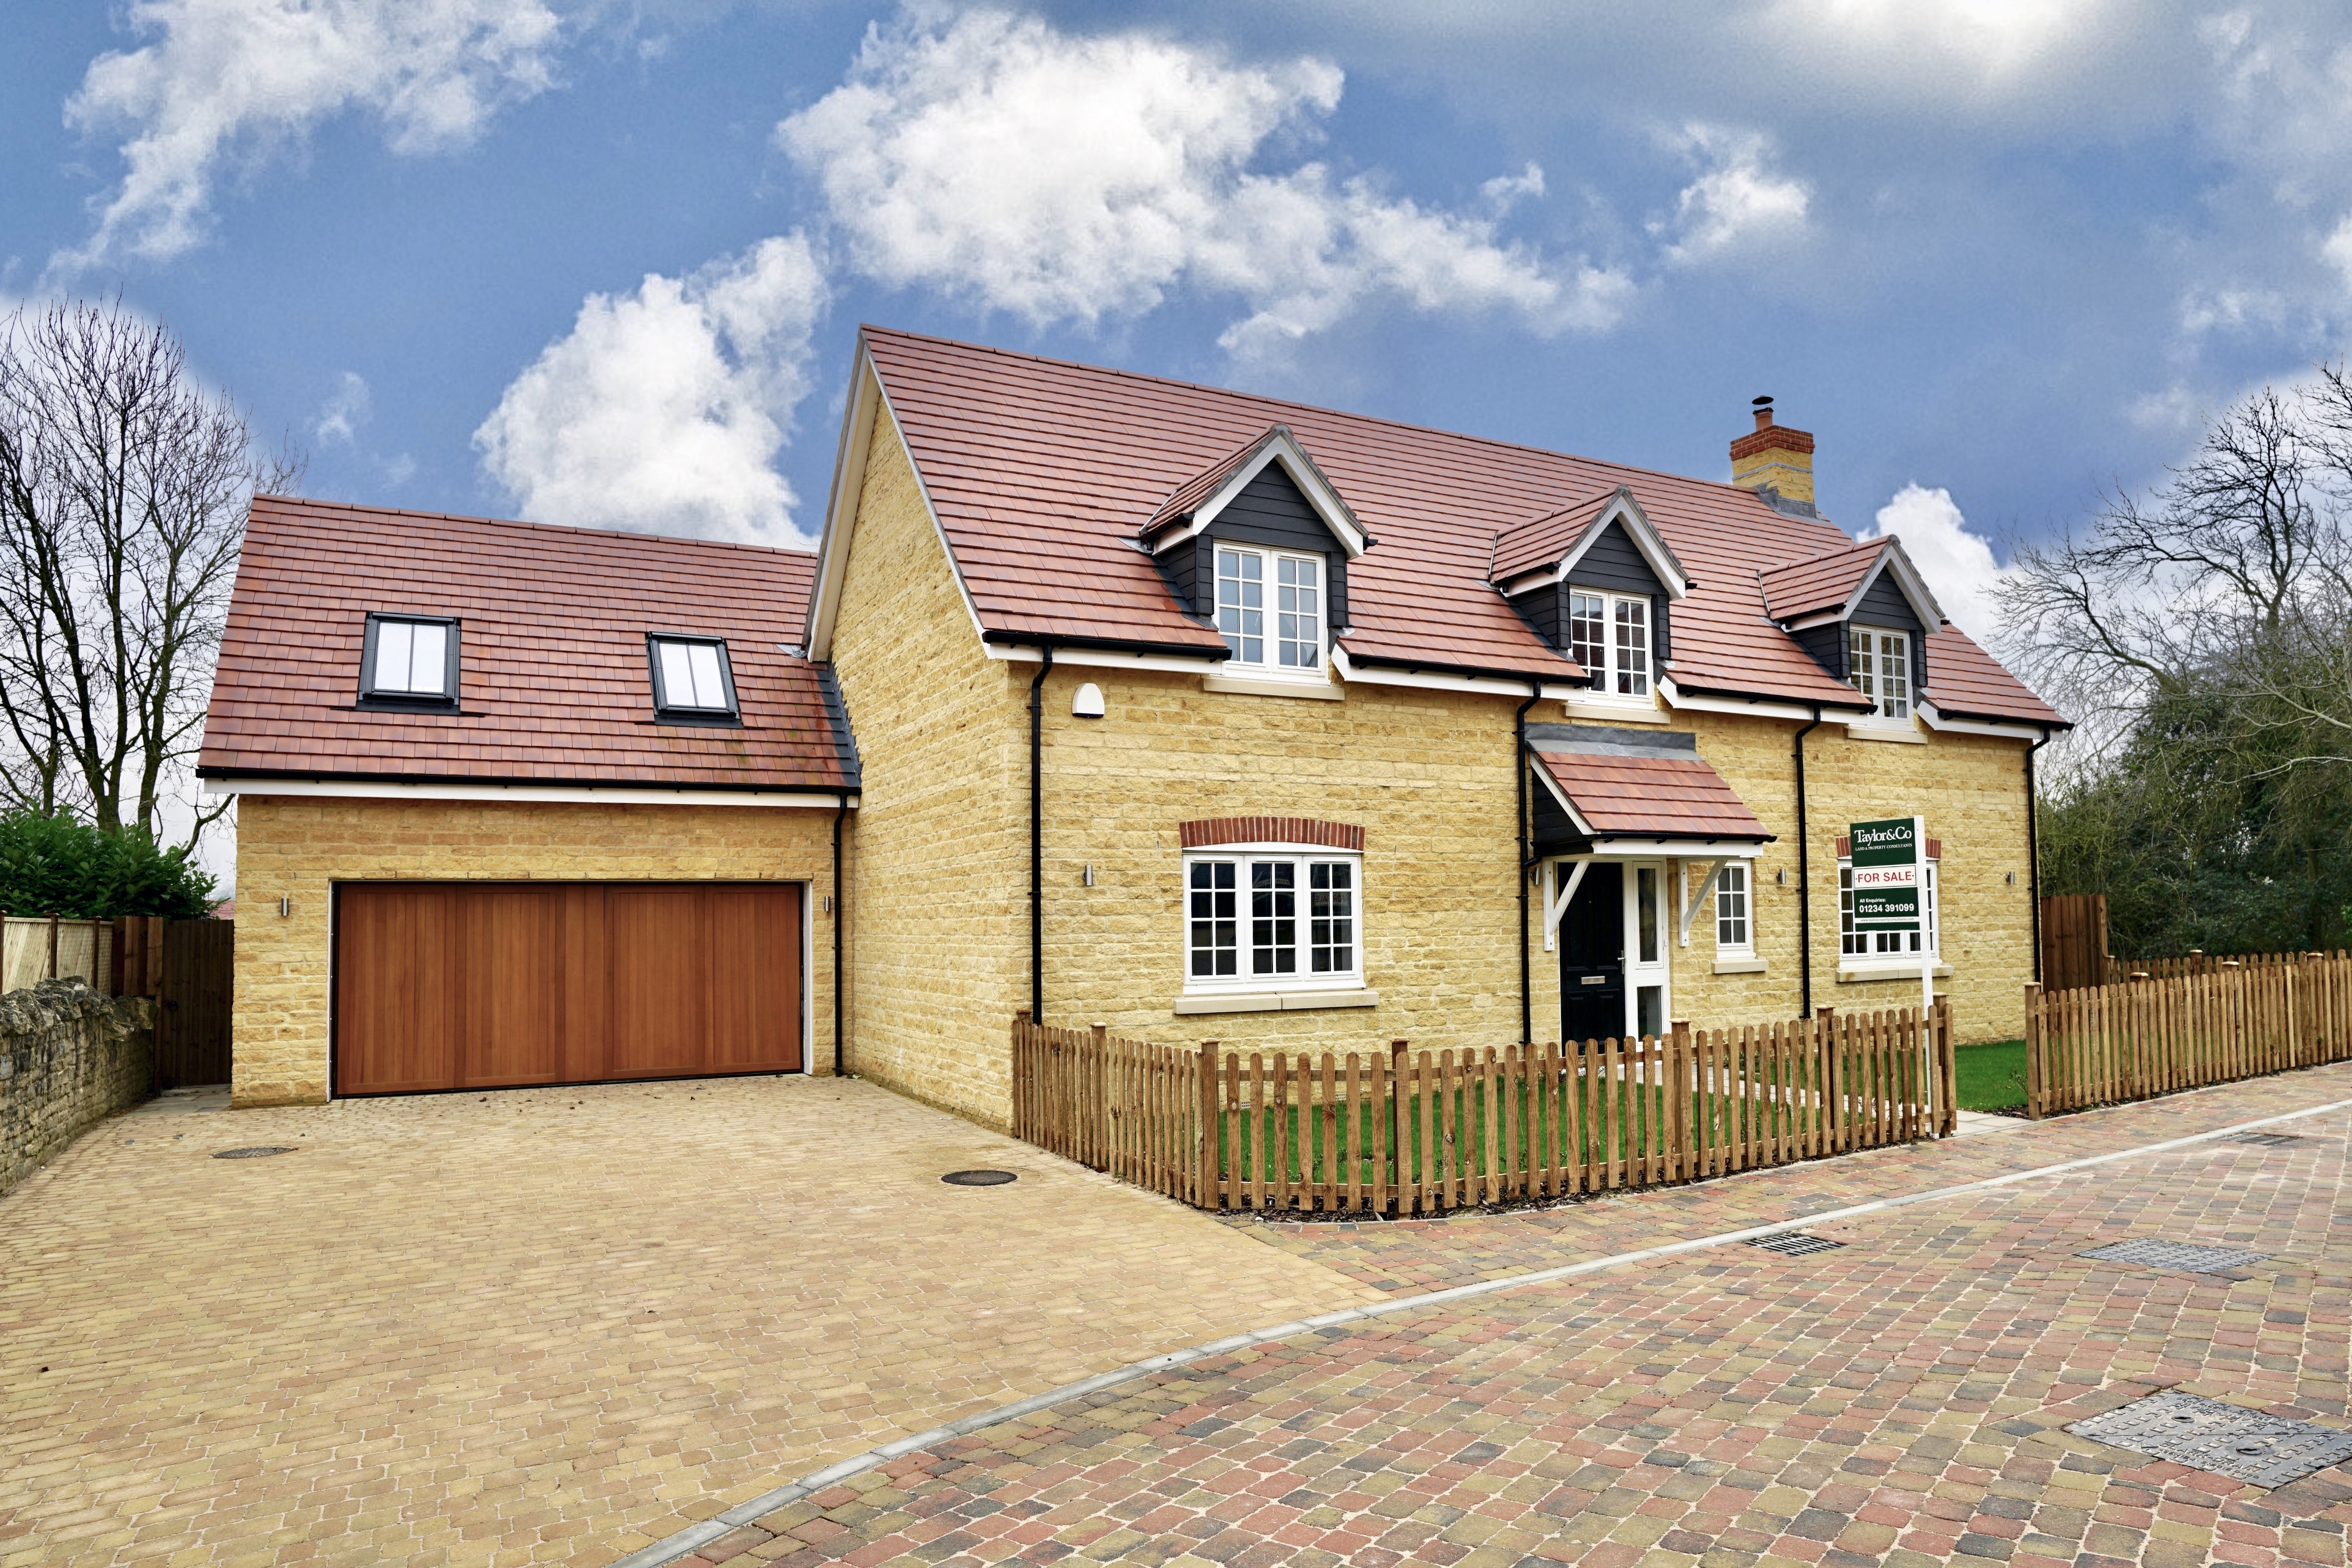 Brand New Homes for Sale, New Build House for sale, Homes